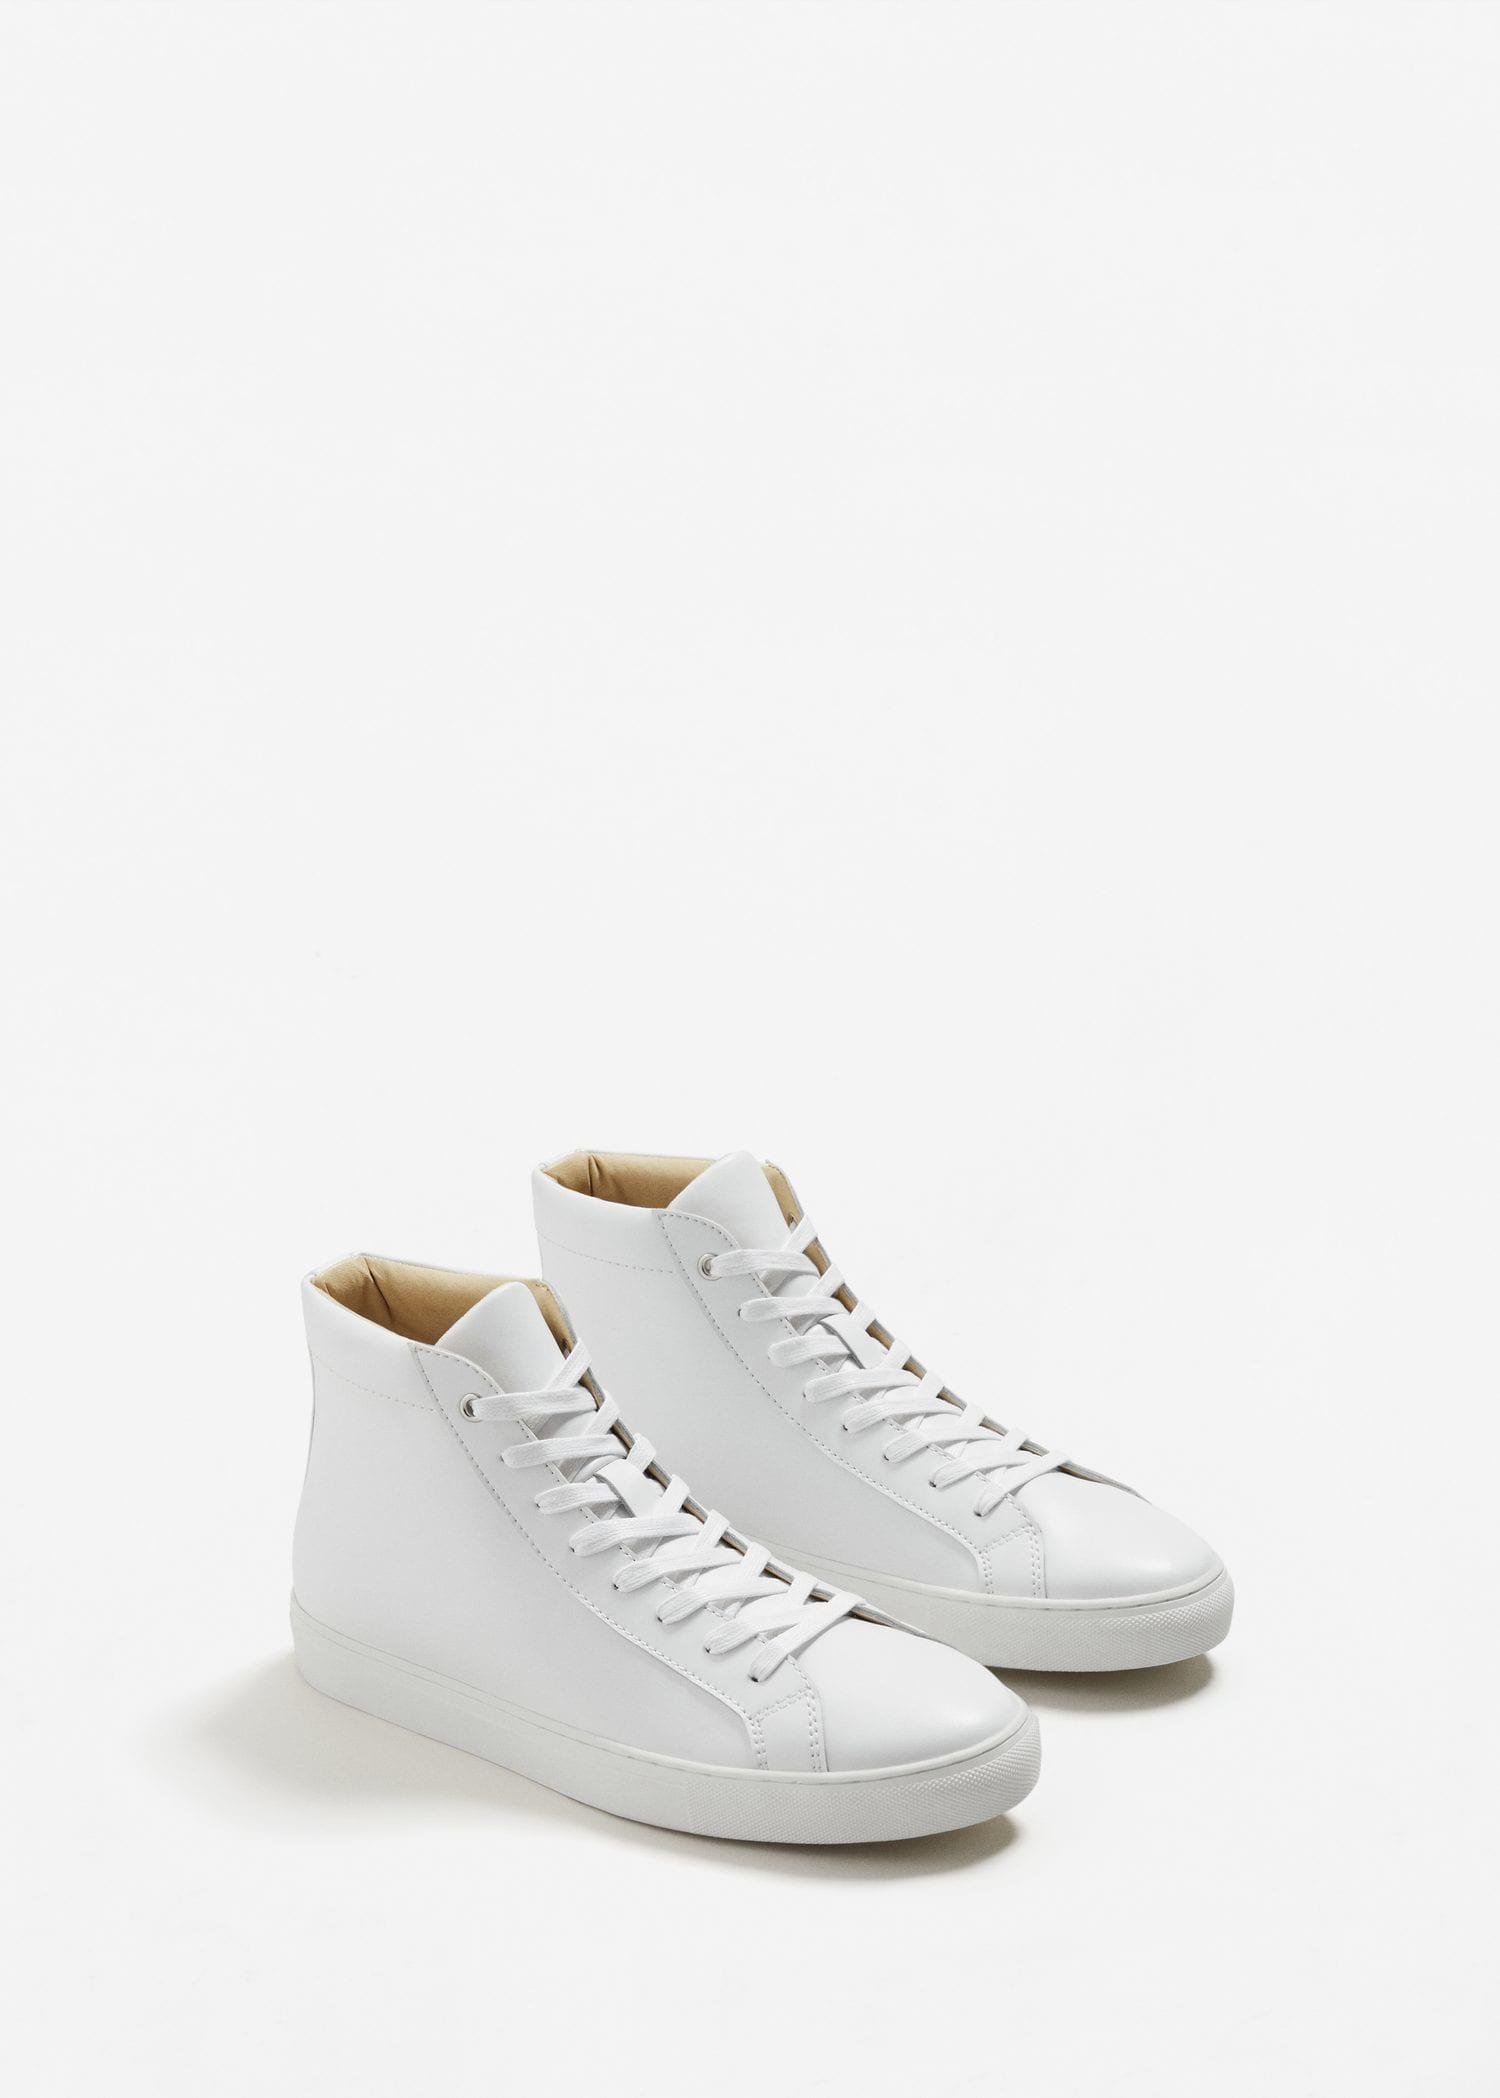 Mango Lace-up Leather Boots in White - Lyst